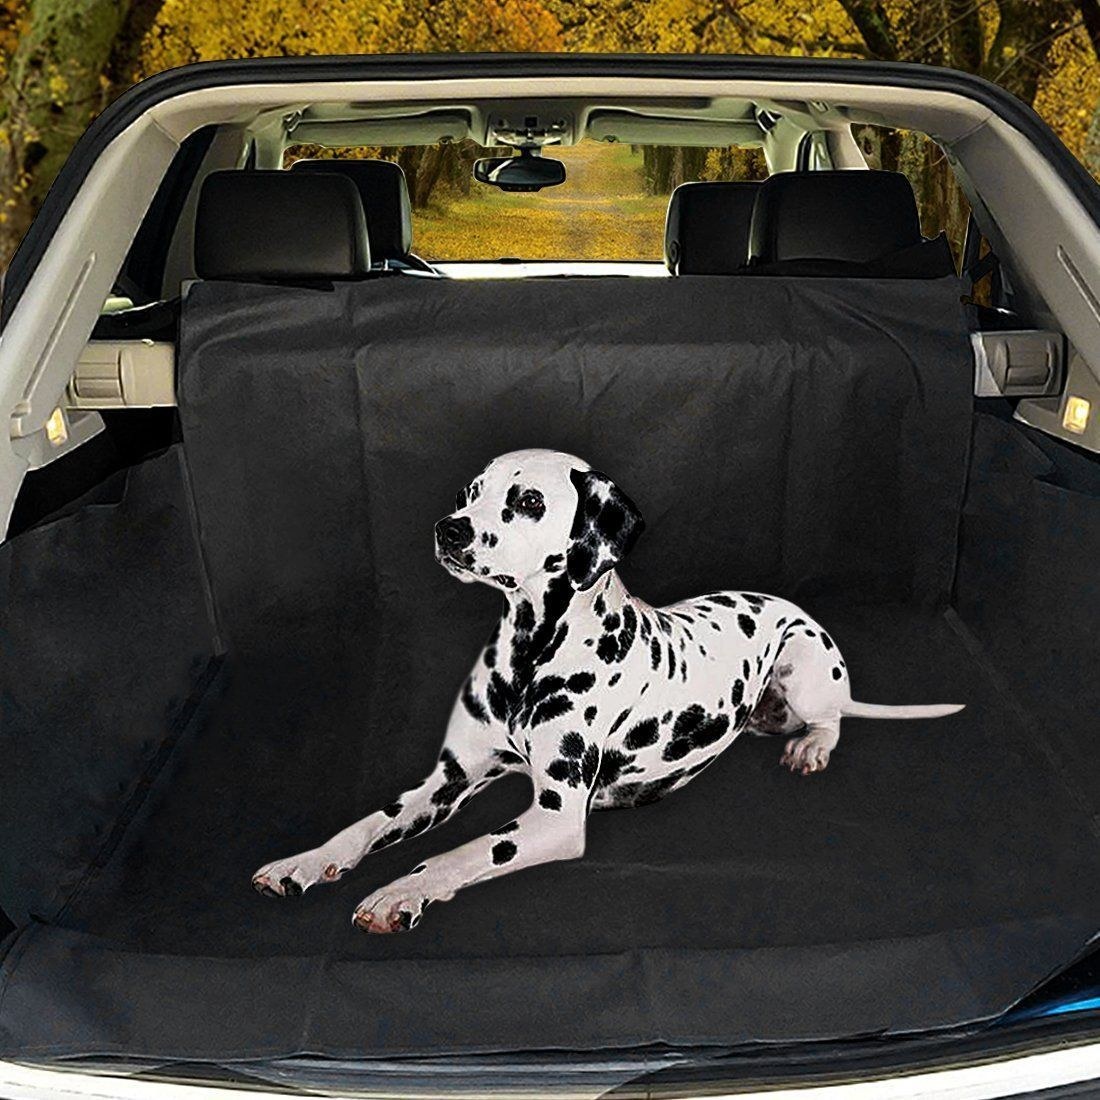 CAR BOOT LINER//COVER MAT FOR DOGS//TOOLS//WORK//PET HEAVY DUTY TRUNK//LIP PROTECTOR